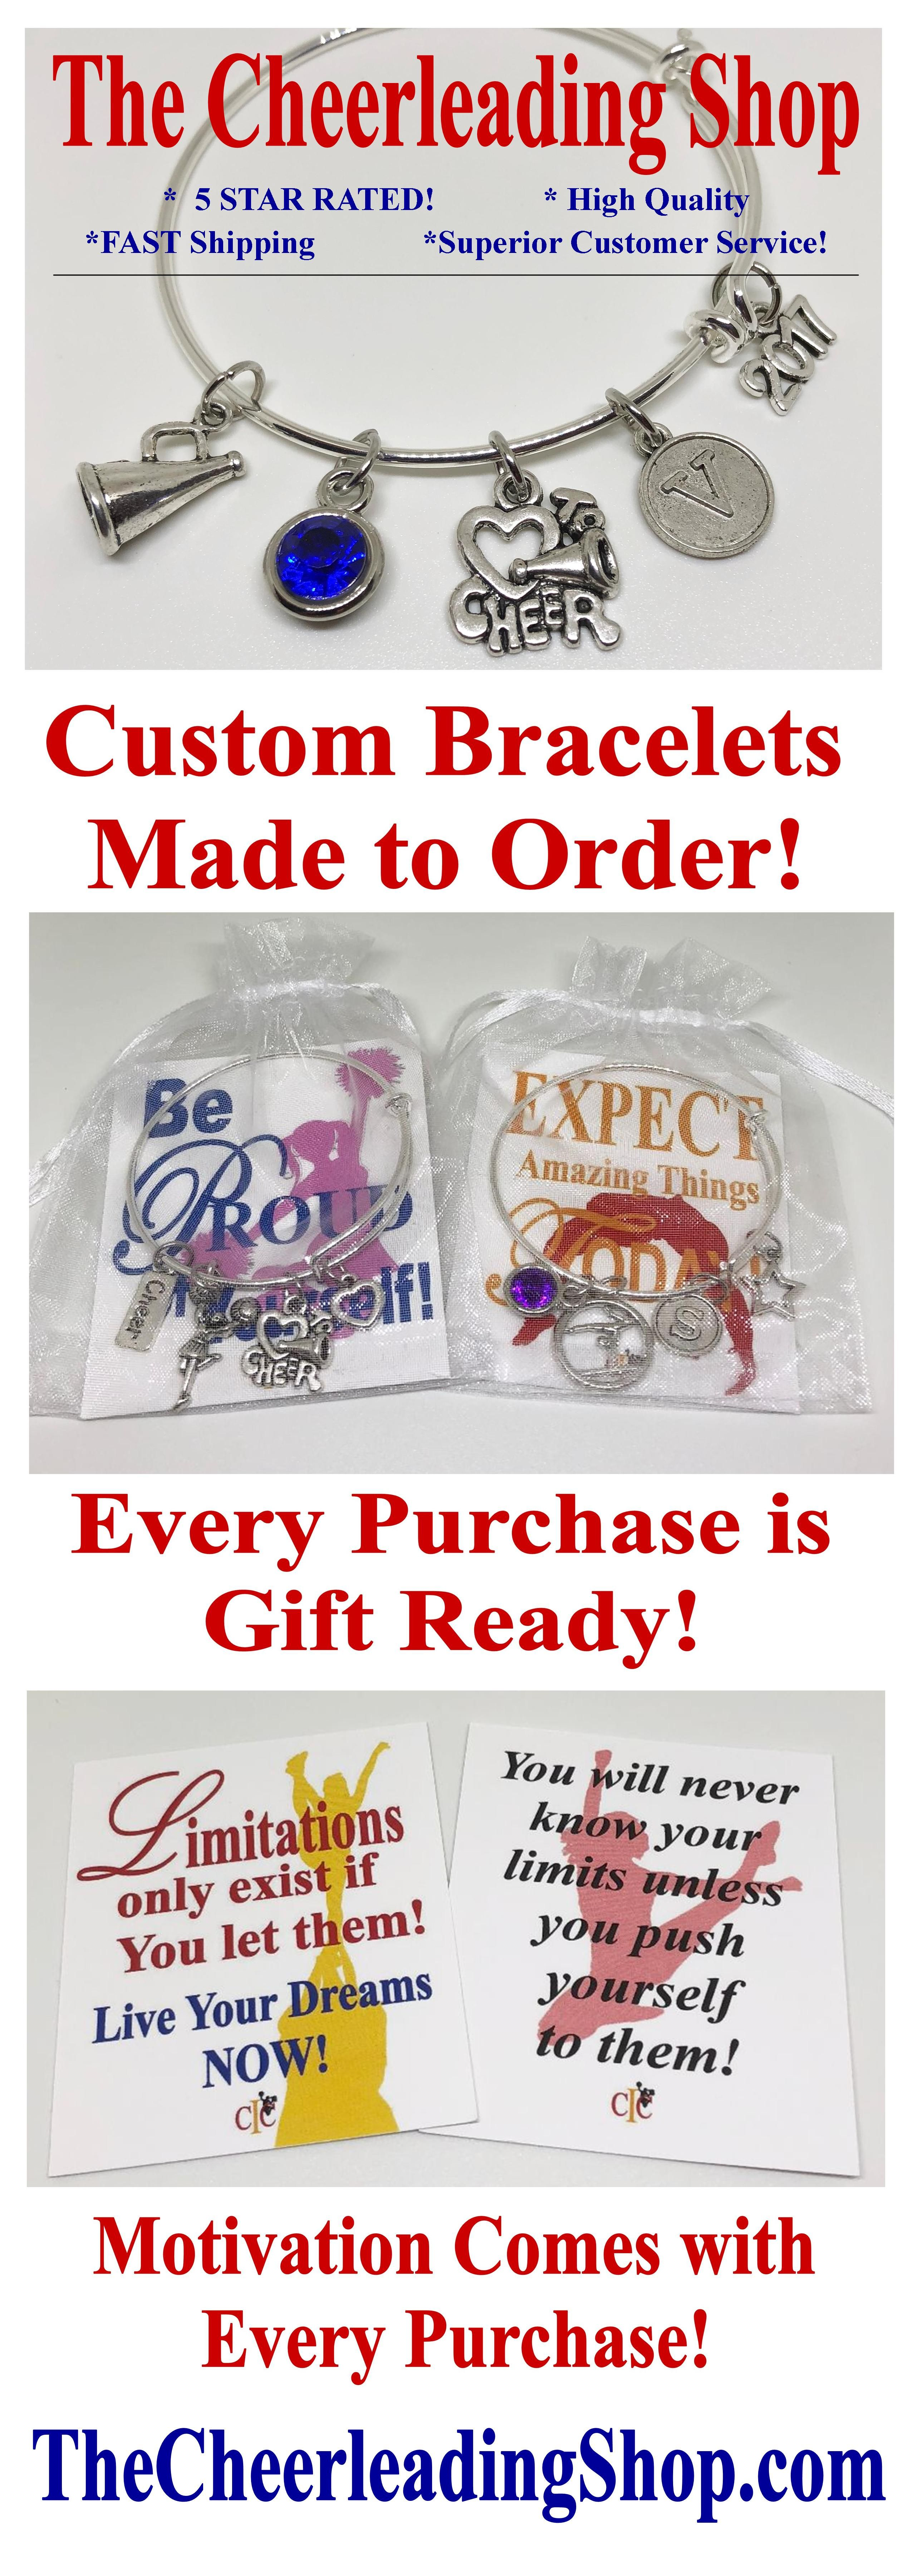 Are you looking for the PERFECT Cheerleading Gifts, Dance Gifts or Gymnastics Gifts? Check out TheCheerleadingShop.com for all of your gift and award needs for custom jewelry with motivation in every purchase!